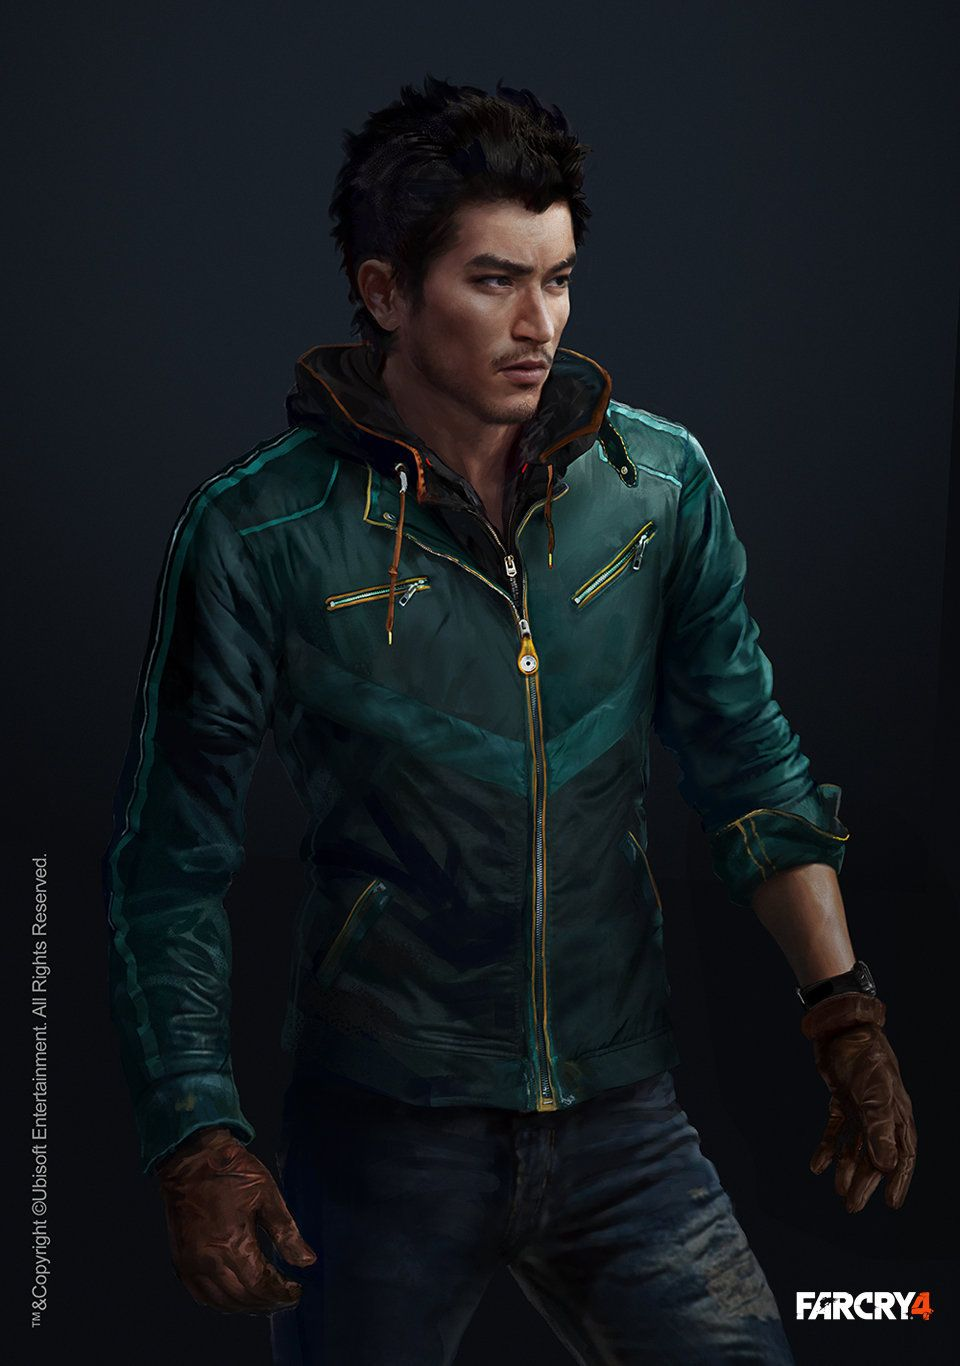 Far Cry 4 Is Full Of Beautiful People Far Cry 4 Concept Art